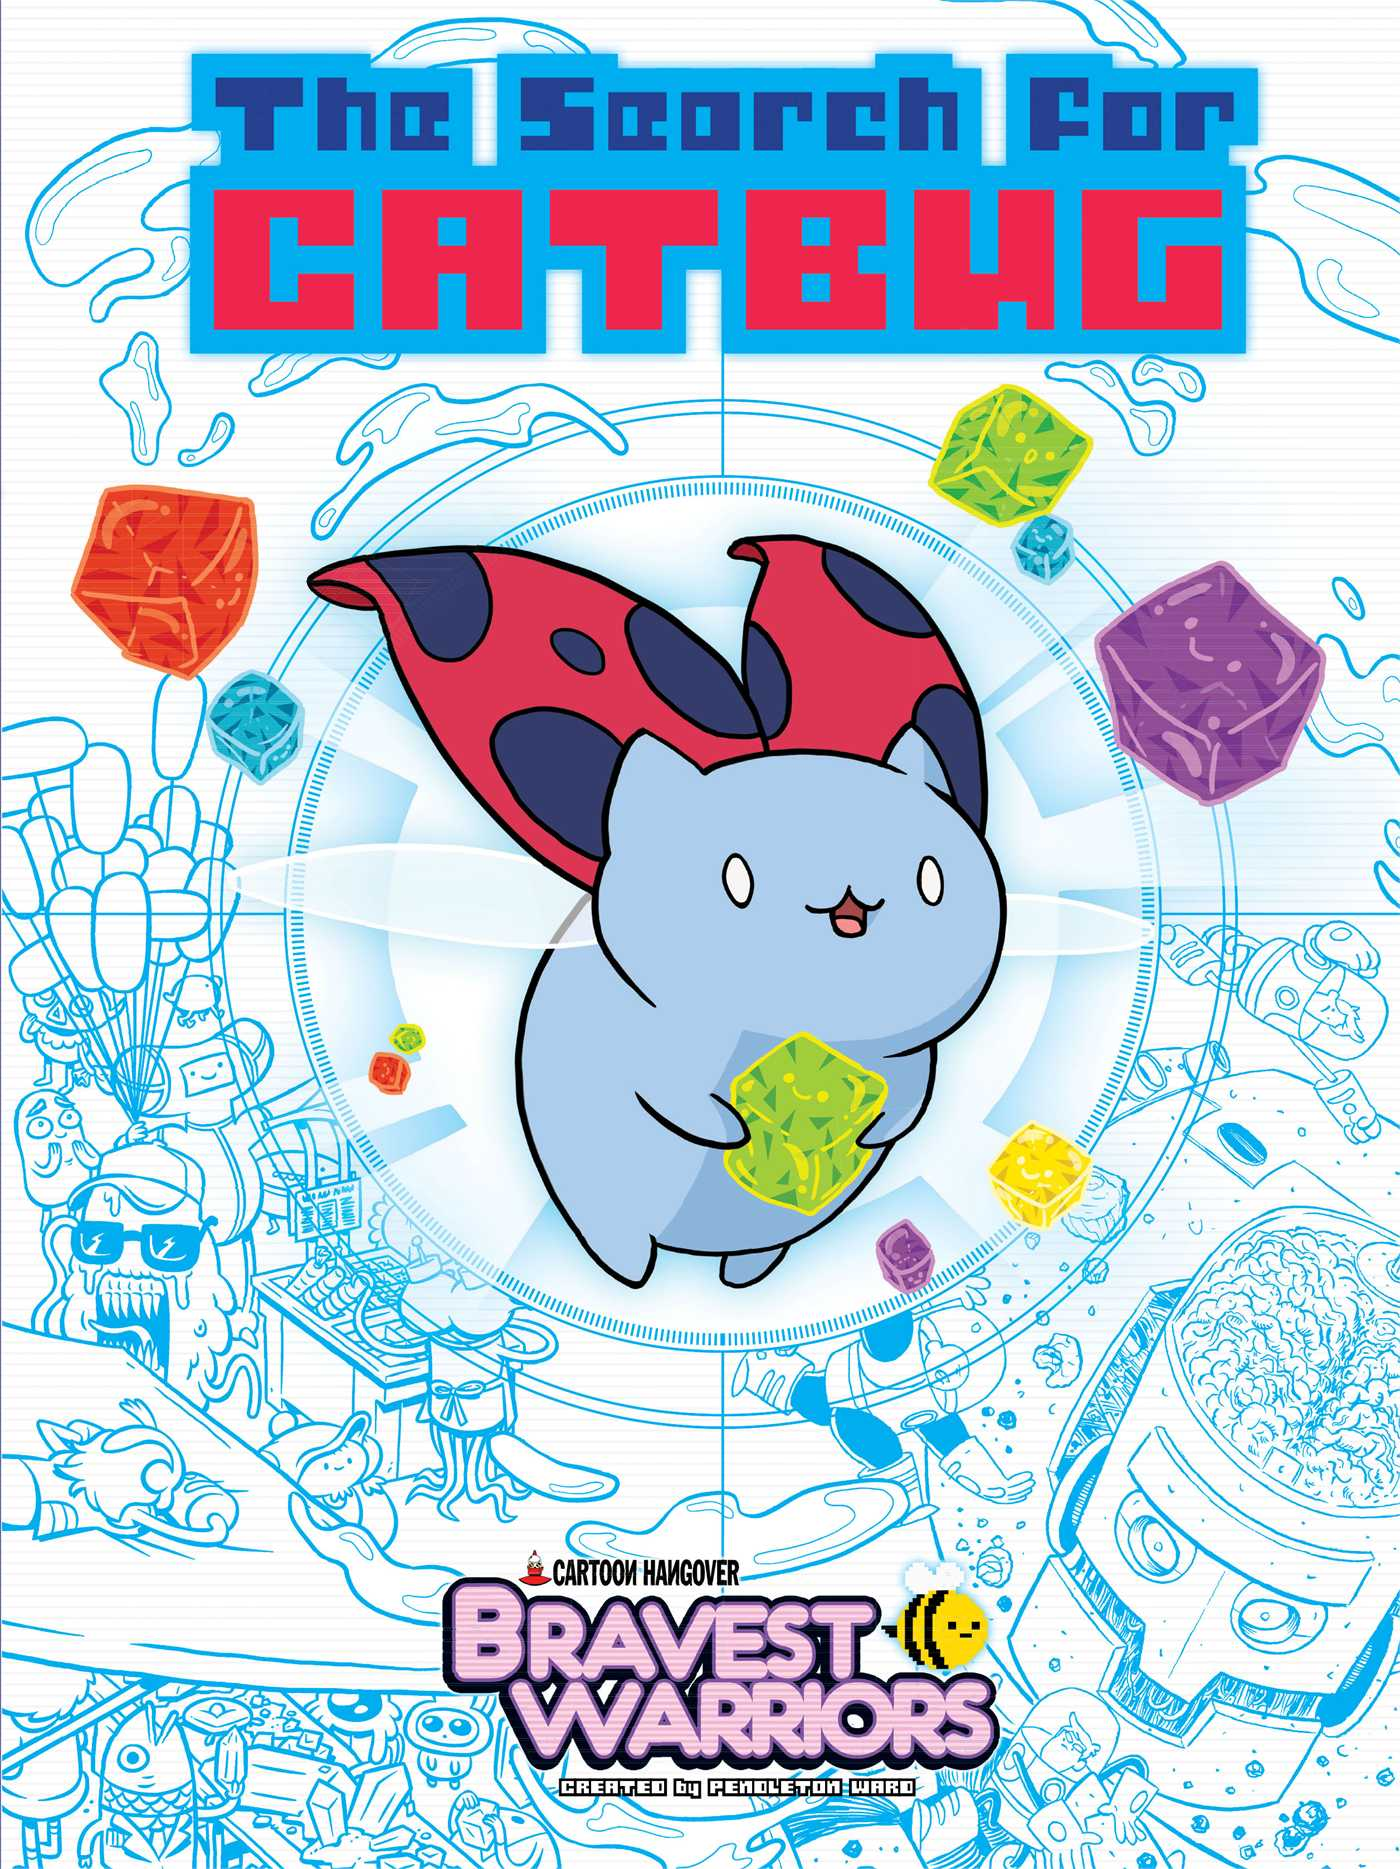 Bravest-warriors-the-search-for-catbug-9781421571775_hr